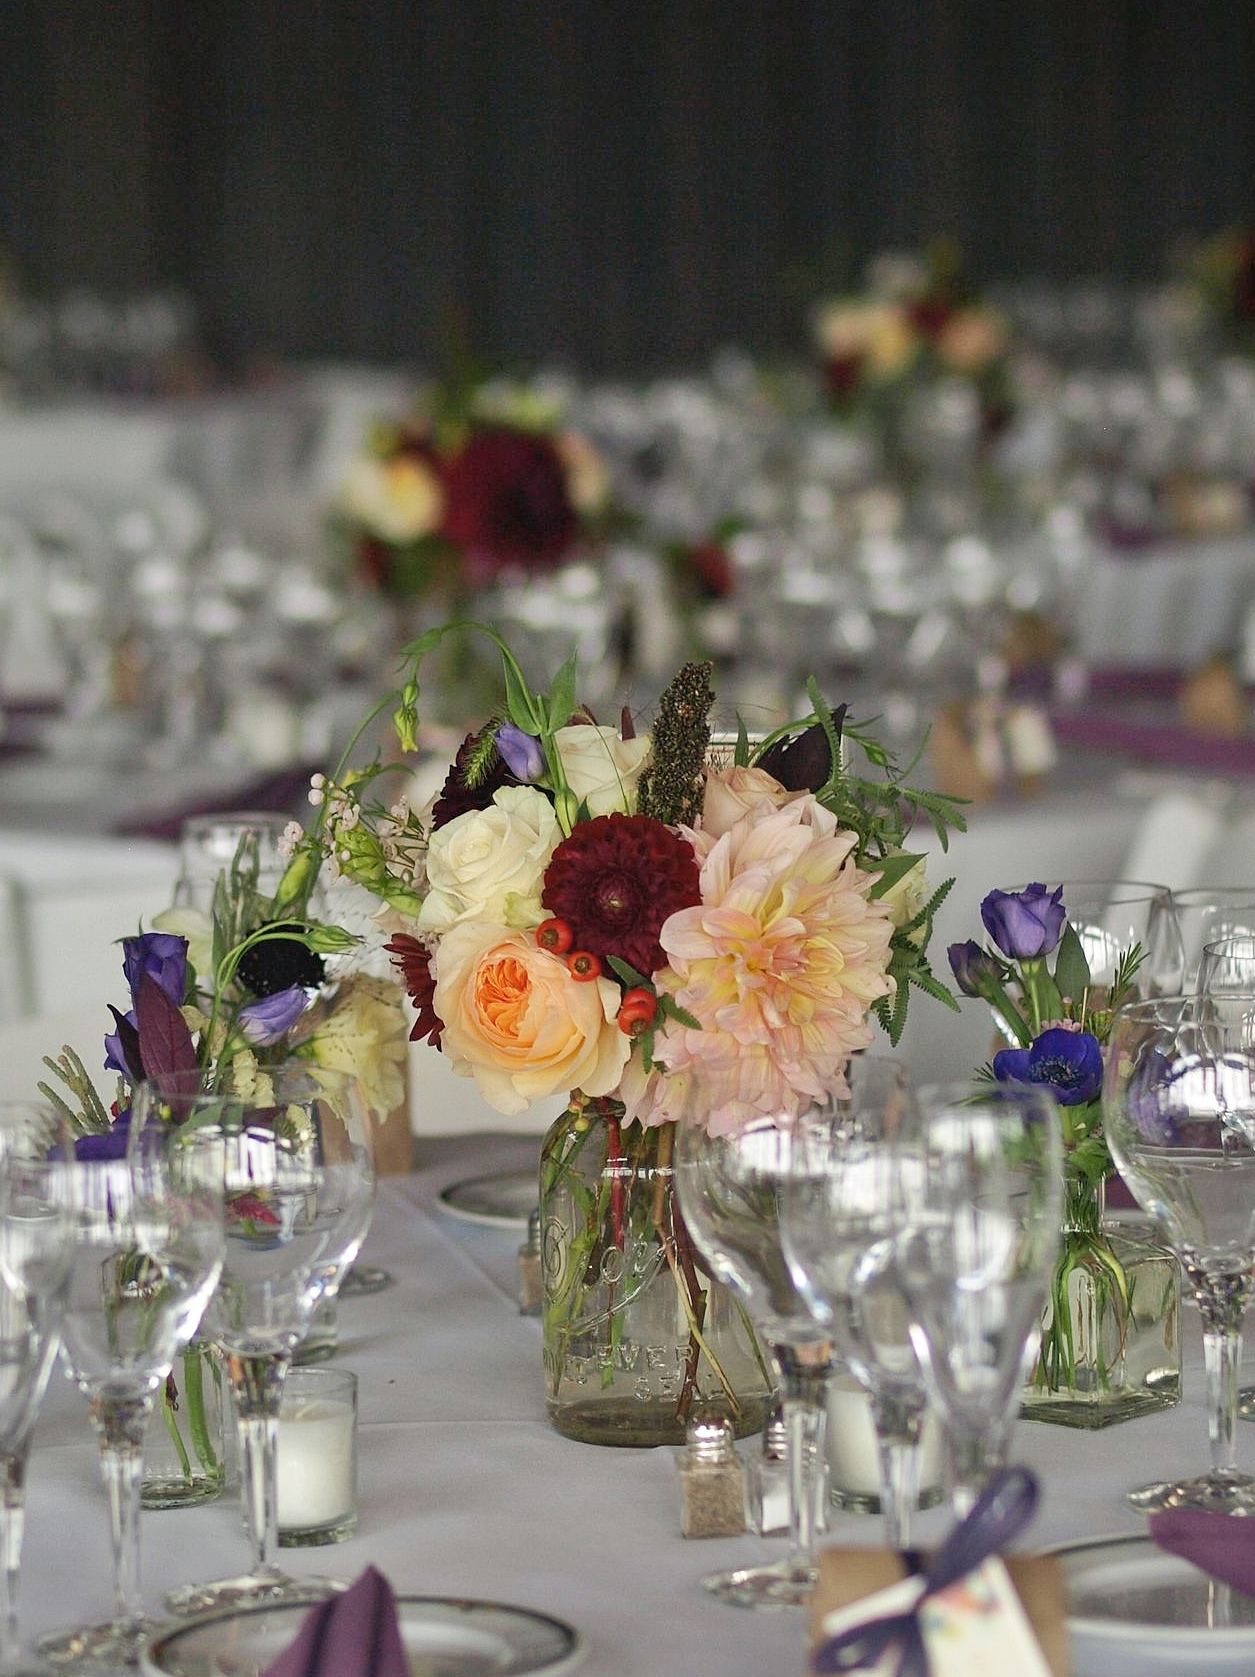 Oreonta house woodstock wedding mason jar centerpiece with garden rose dahlia and wildflowers 1.jpg